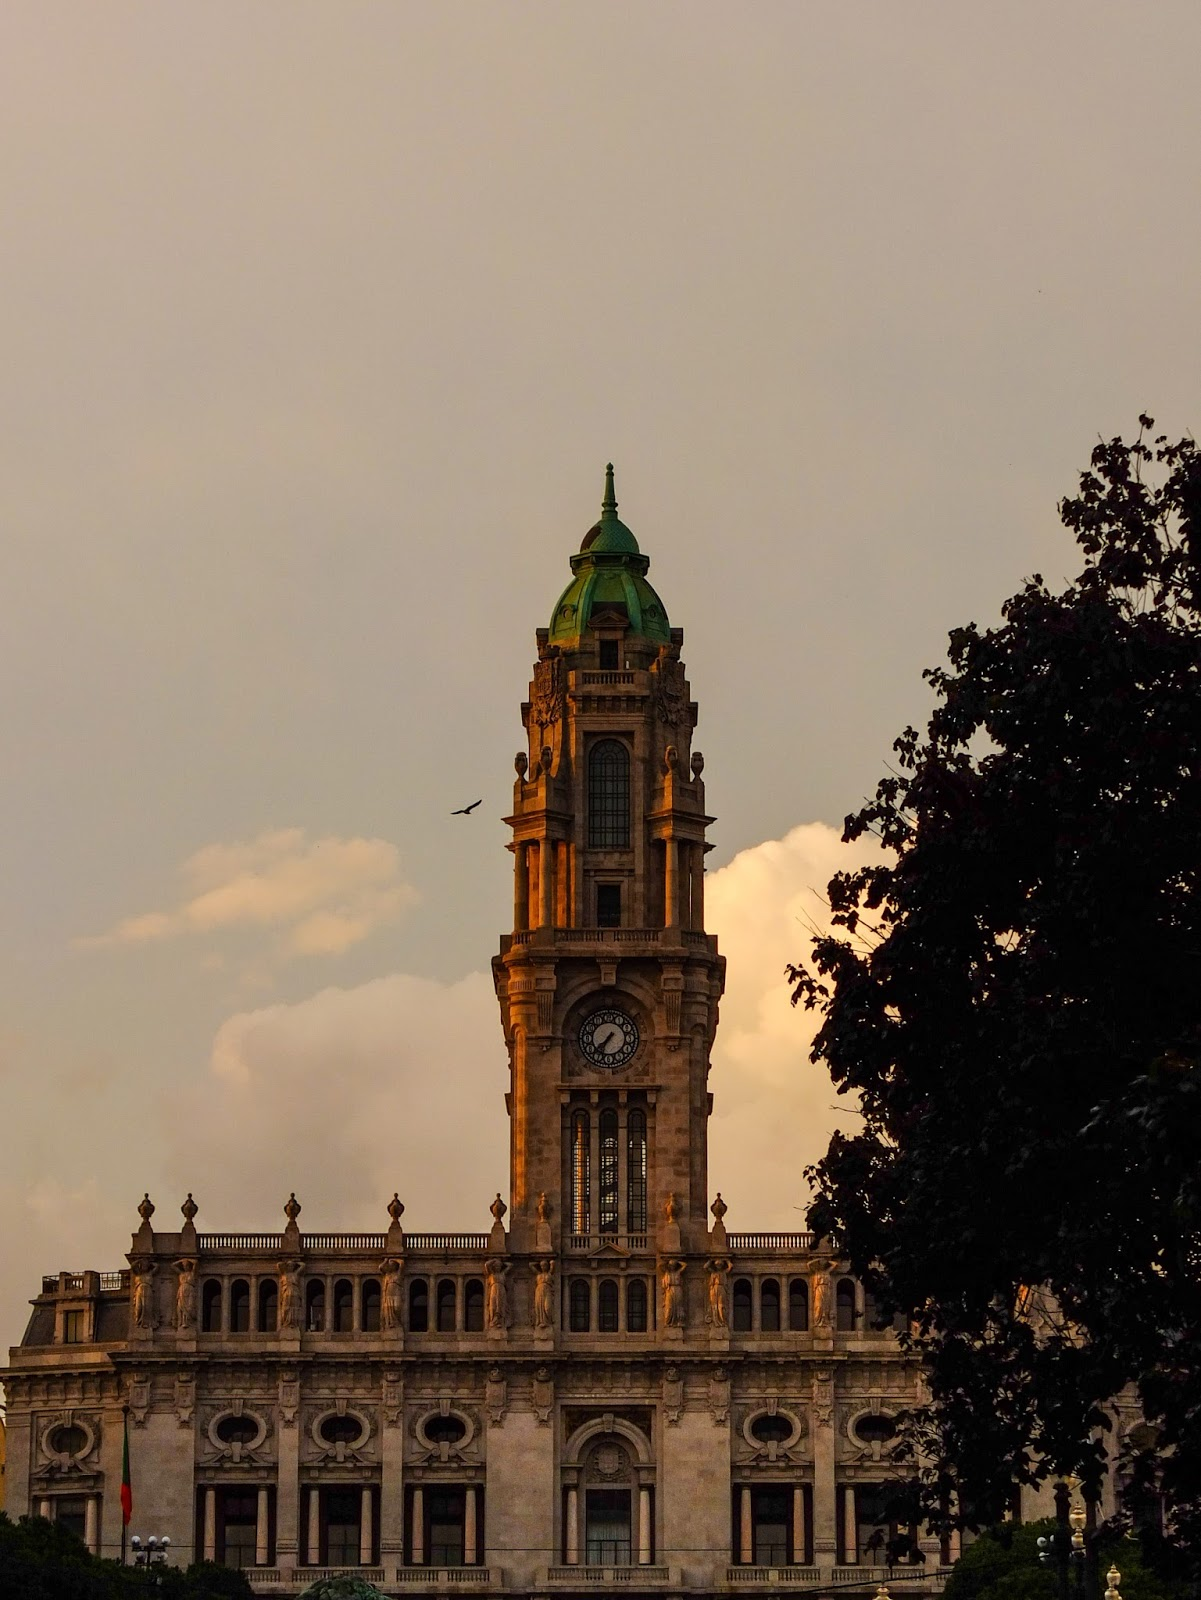 City Hall at sunset in Porto, Portugal.